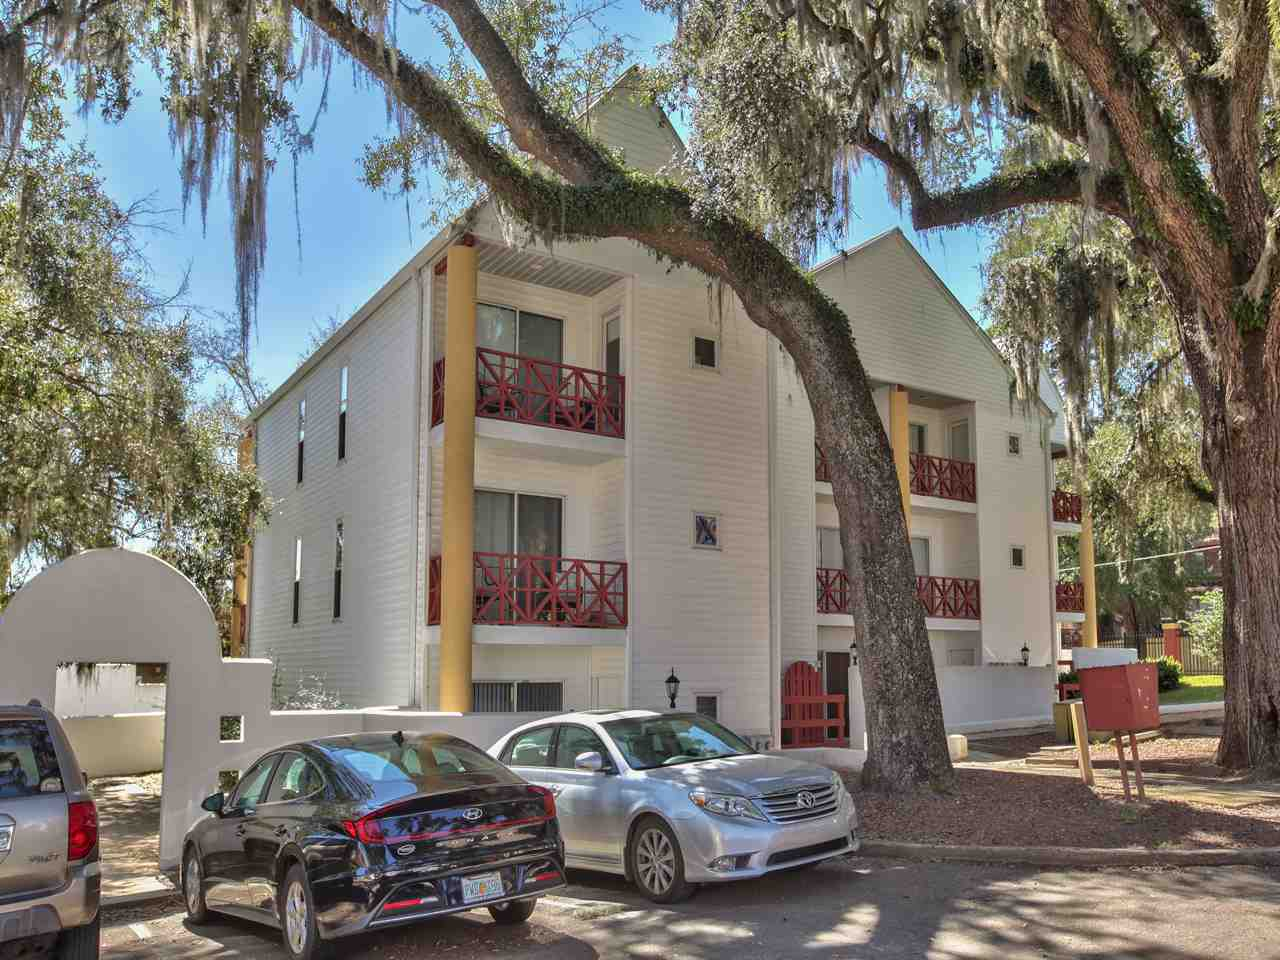 WE HAVE MULTiPLE OFFERS! PLEASE SUBMIT PRIOR TO 5:00 SUNDAY, FEB 28TH.   Appointments made thru LA- leased thru 7/31/21 but can be vacant 5/1/21. Stylish ground floor student condo in highly sought-after complex in the shadow of Doak Stadium! Condos in this complex rarely come available and never last long! Use 2 parking permits or walk to the game, class, bus stops, restaurants, & College Town. Low maintenance, 2 bedrooms, 2 full baths, updated kitchen and baths, freshly painted, covered patios and full-size washer/dryer. HOA fees include exterior bldg and common area maintenance and insurance, trash, water, and sewer. Gorgeous 100-year oak trees adorn this FSU gem. Buyer to verify all measurements. Don't miss out on this INVESTMENT!